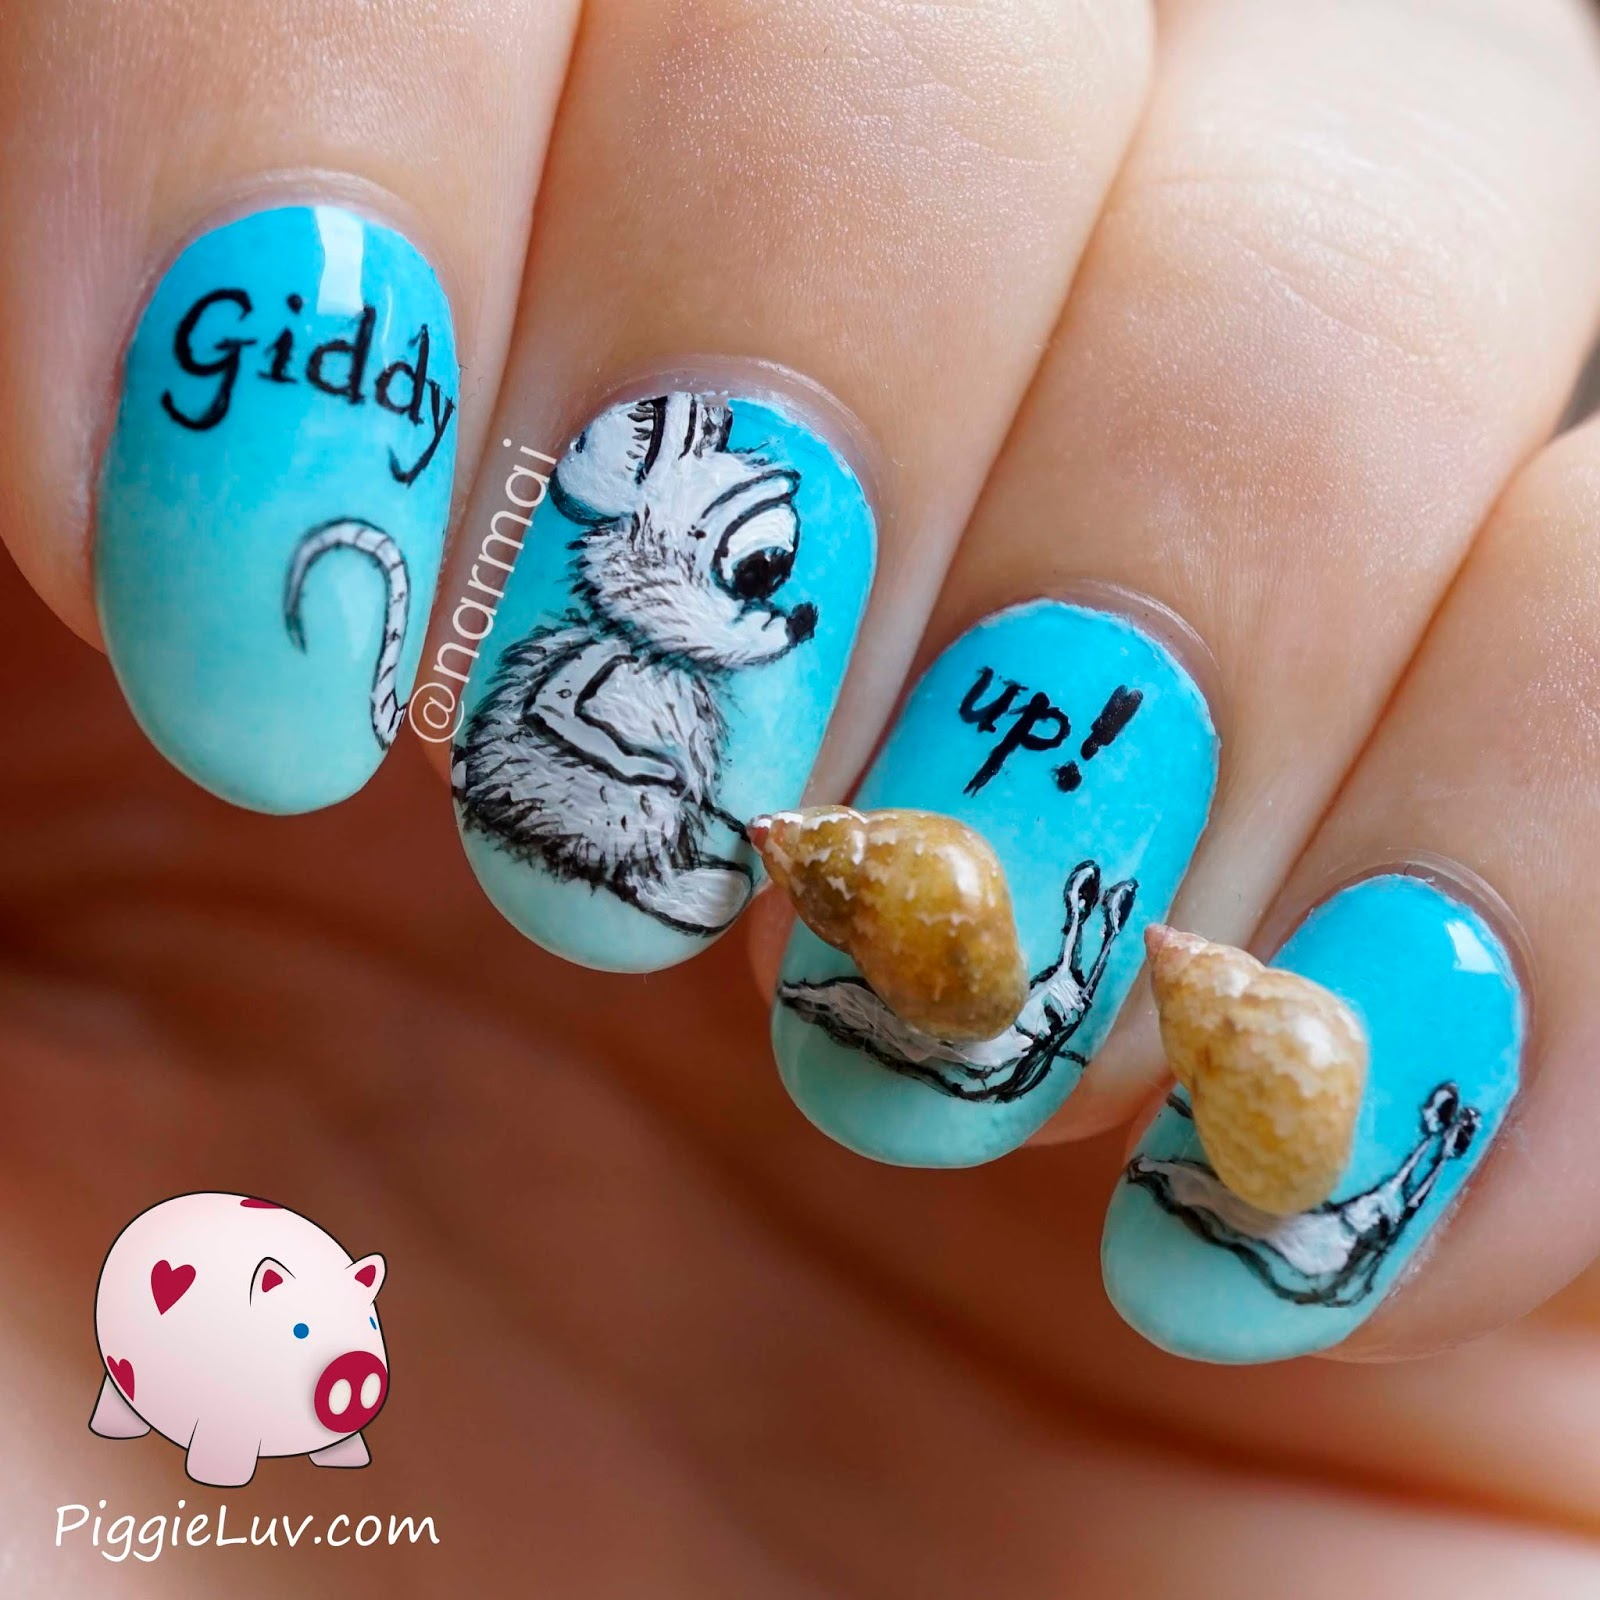 PiggieLuv: Giddy up 3D snails nail art